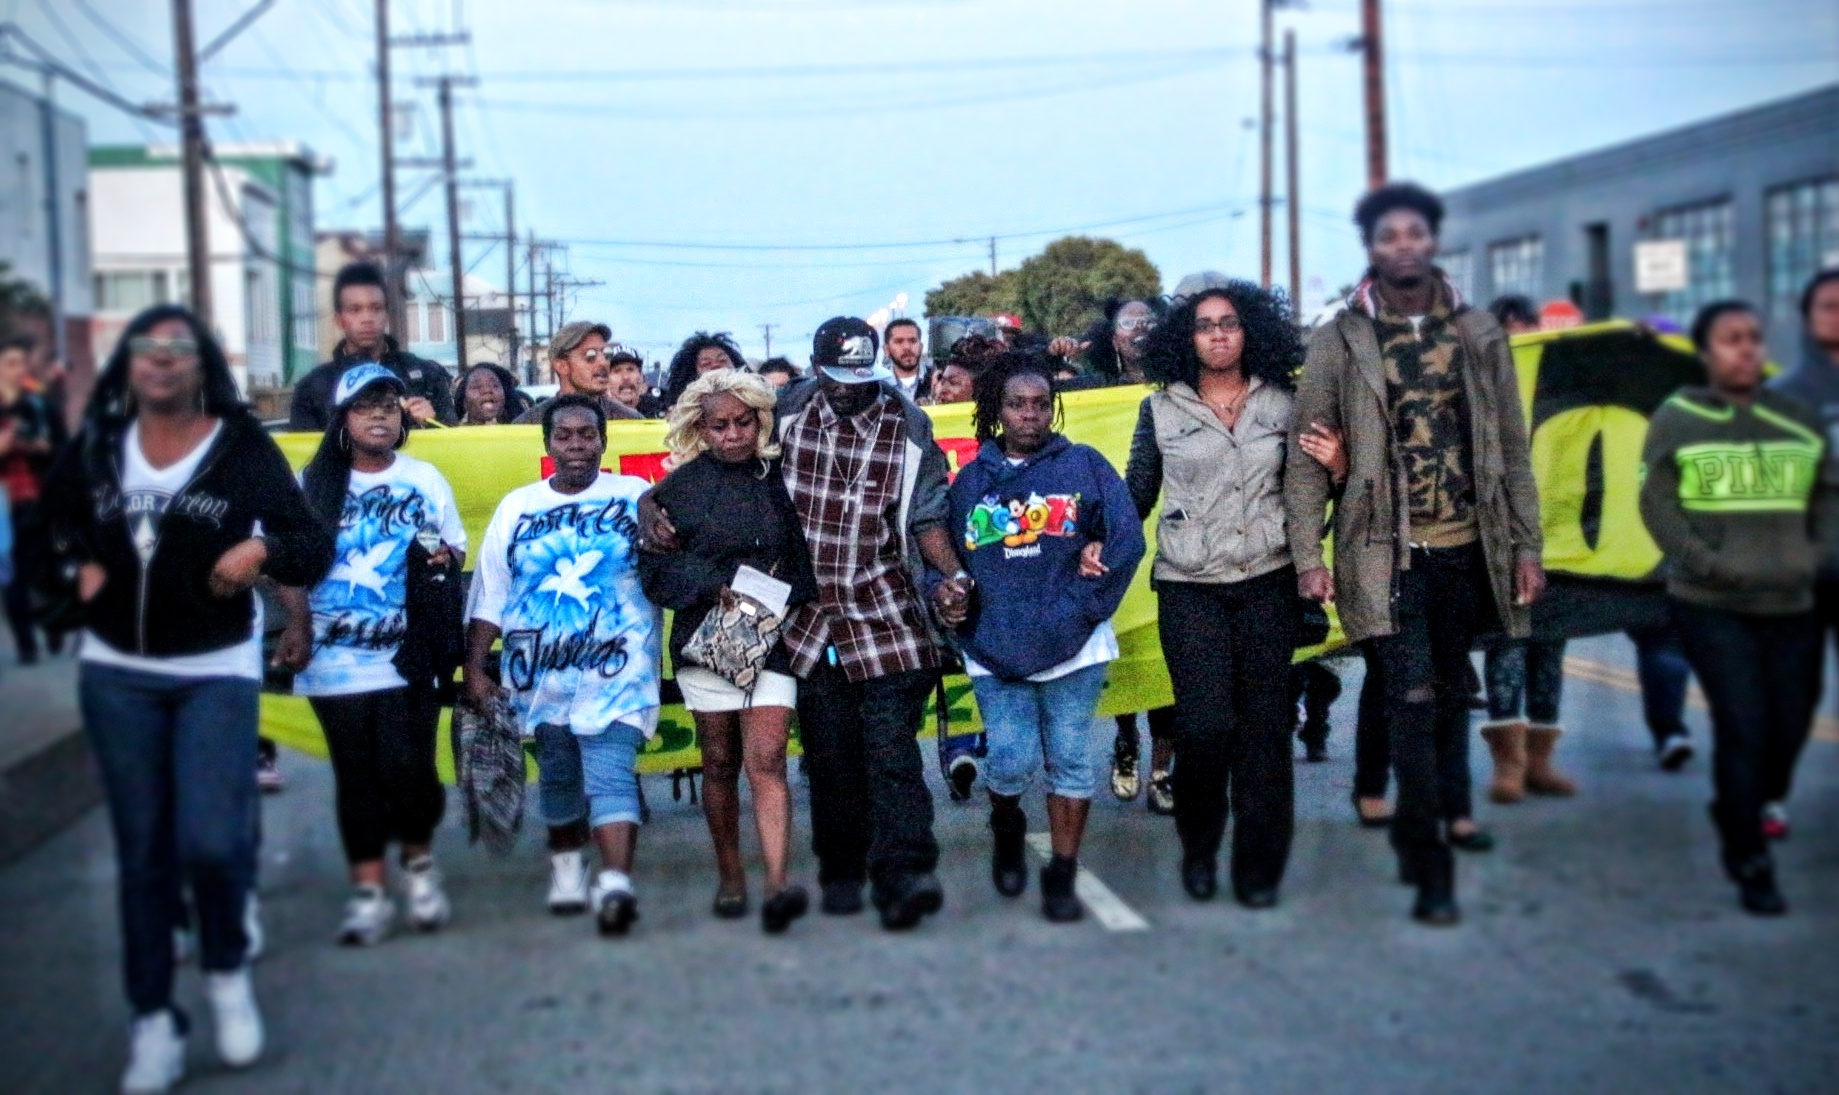 The Nelson family march to Bayview Police Station. Photo by Sana Saleem